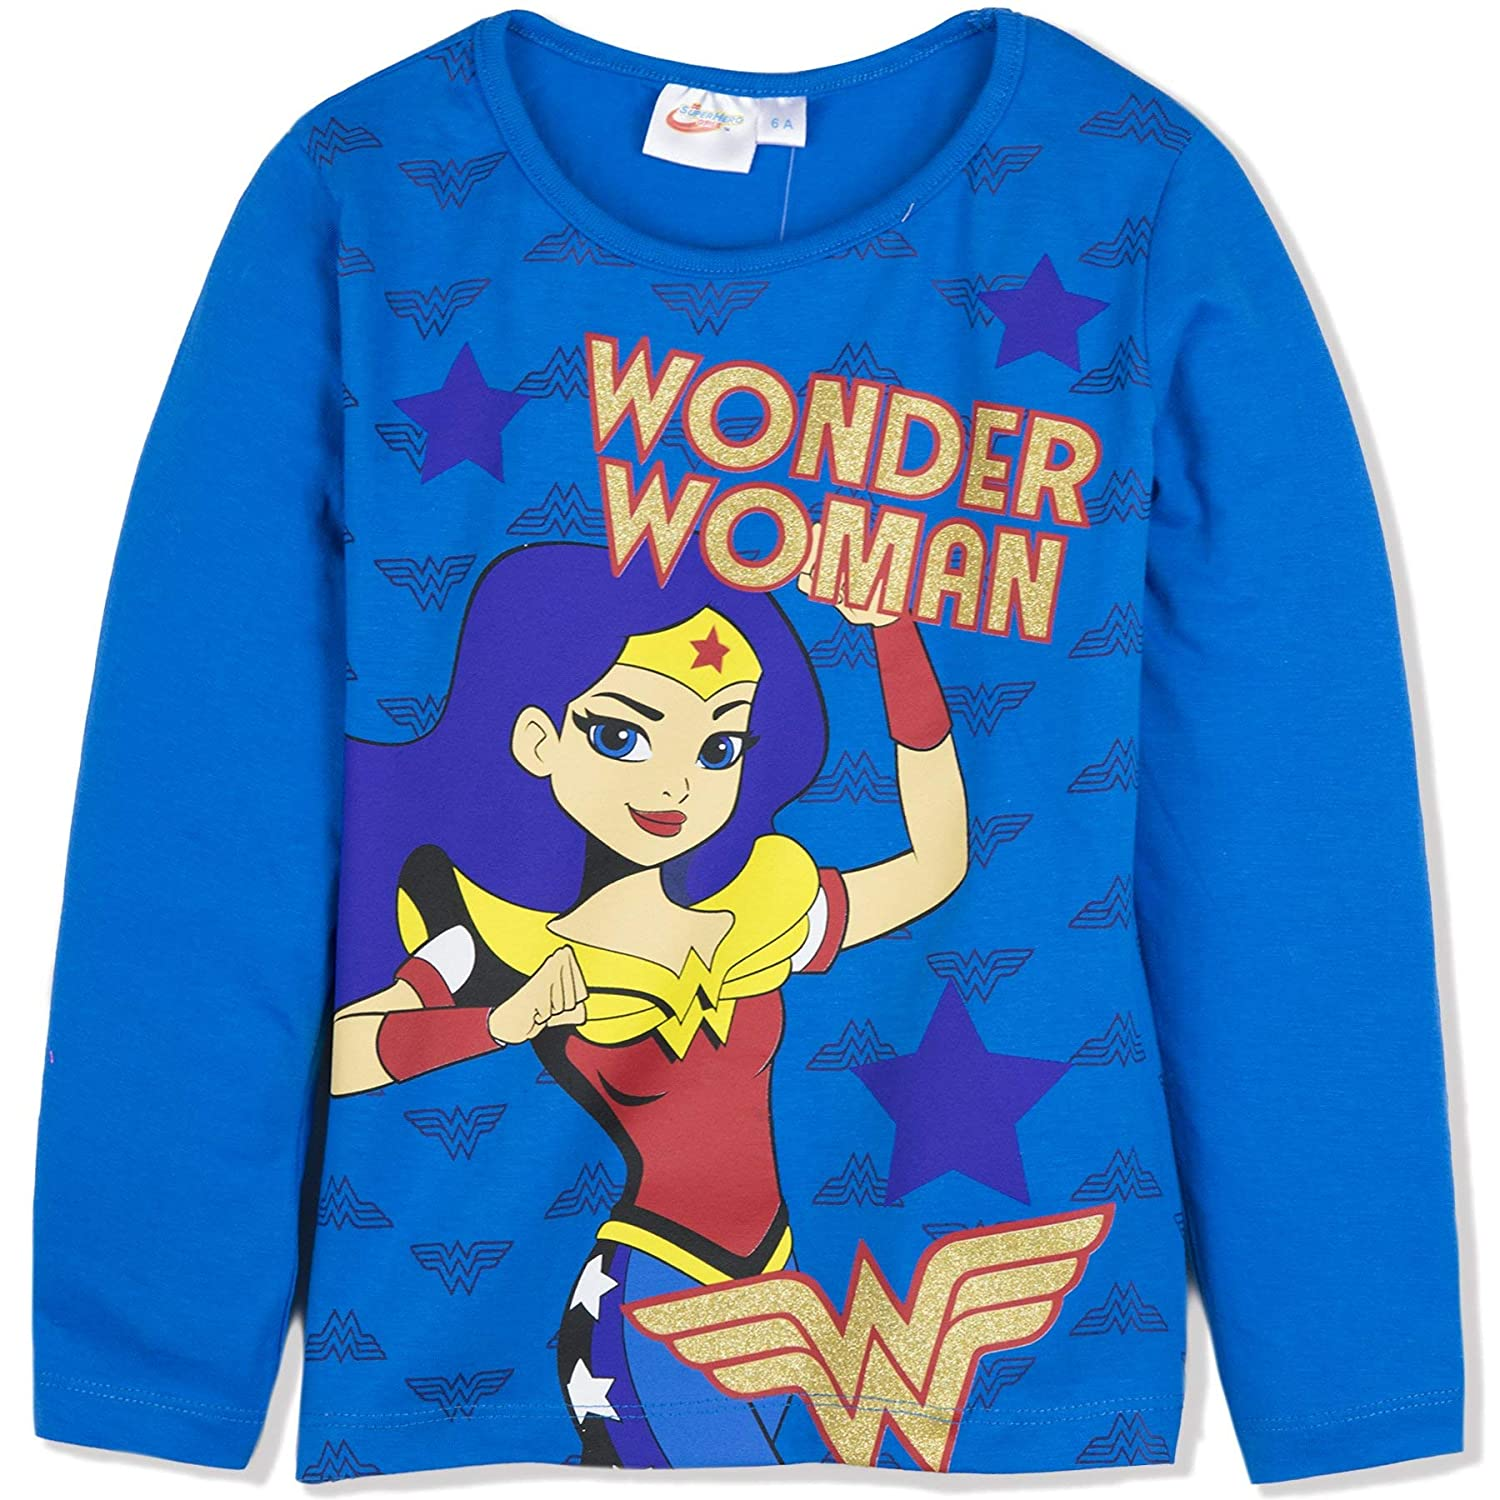 DC Super Hero Girls Official Licensed Long Sleeve Top T-Shirt 100% Cotton 3-10 Years - New 2018/19